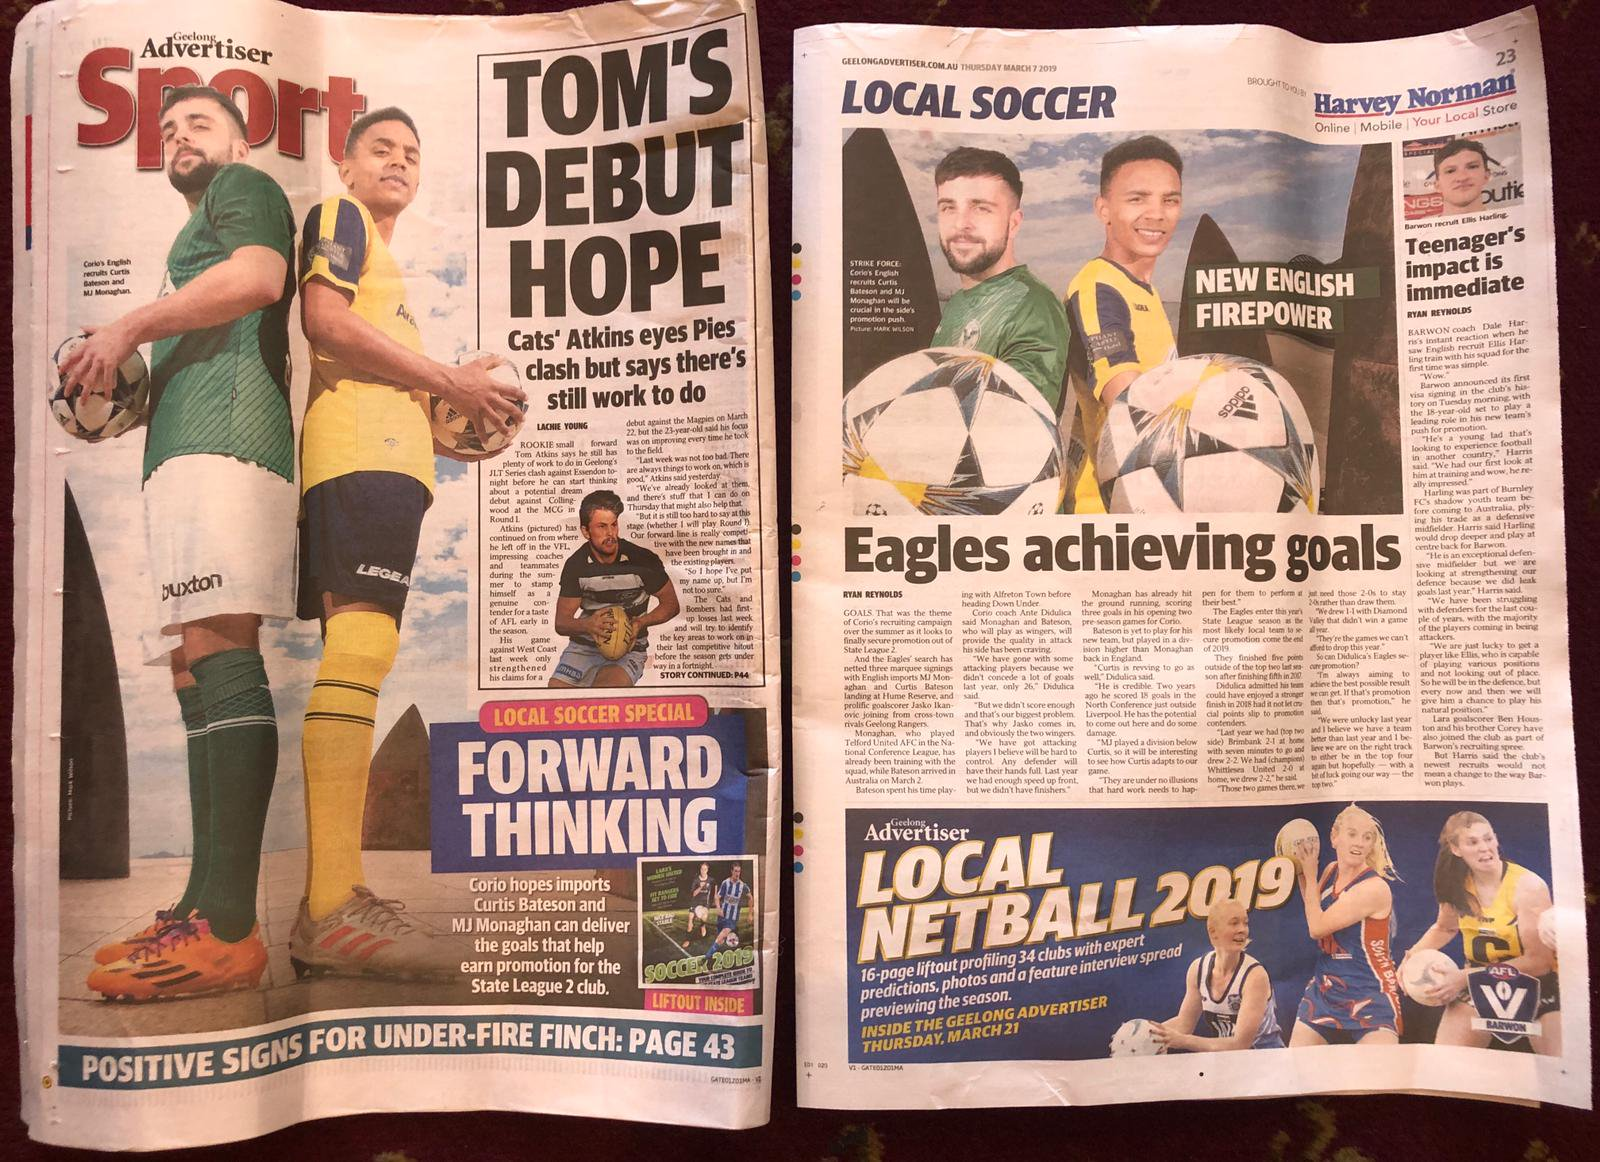 Bateson's arrival to play soccer in Australia was big news